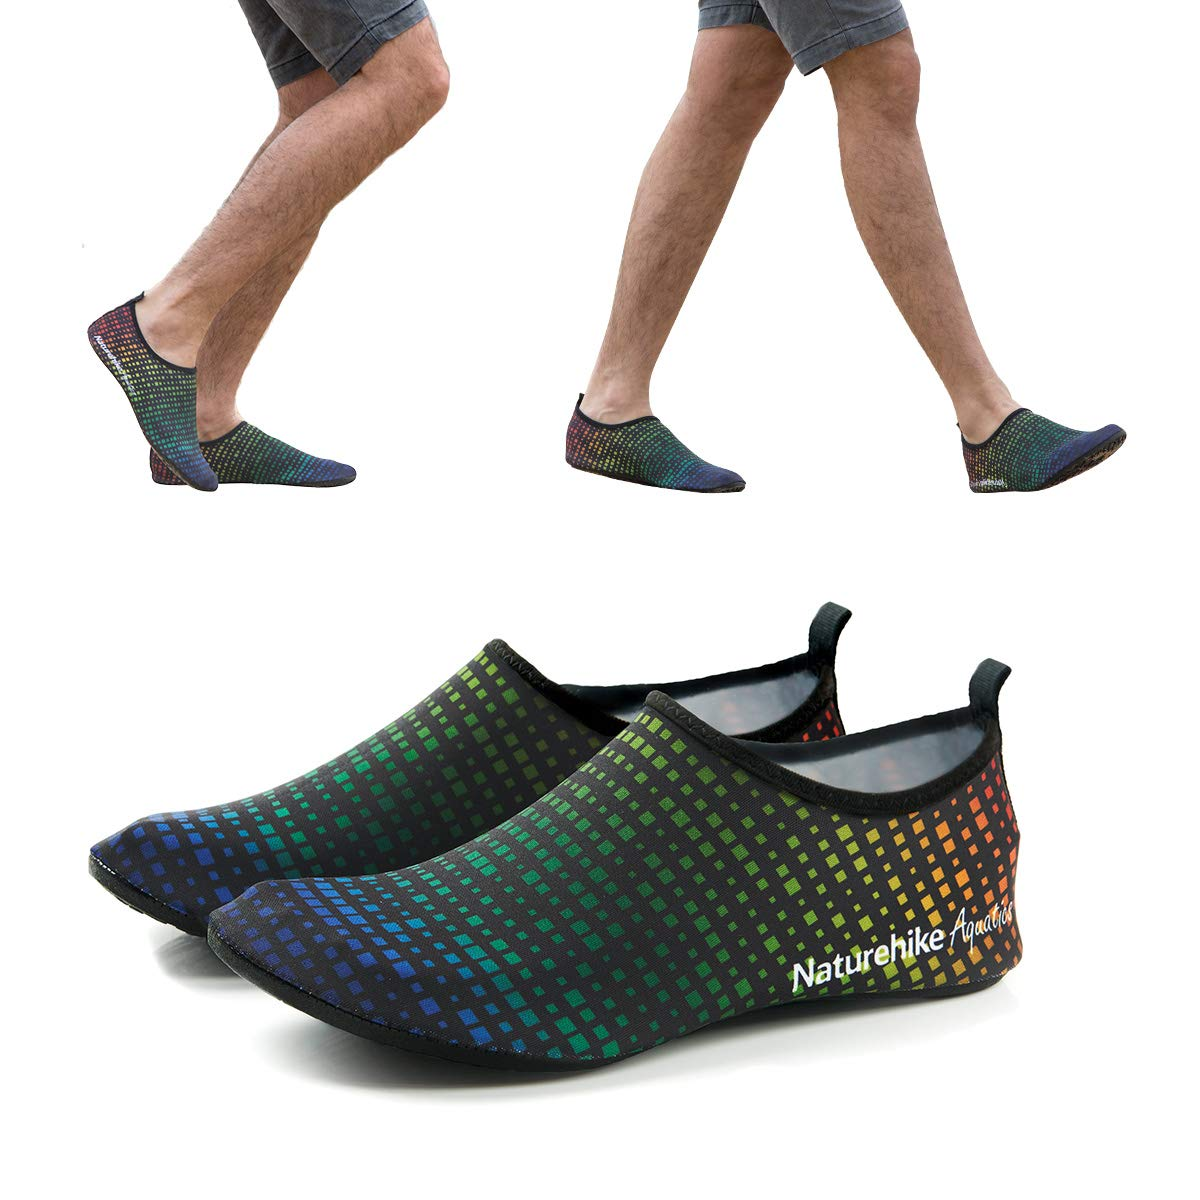 Womens and Mens True Color Digital Printing Water Shoes - Barefoot Quick-Dry Aqua Socks for Beach Swim Surf Yoga Exercise Water Sport